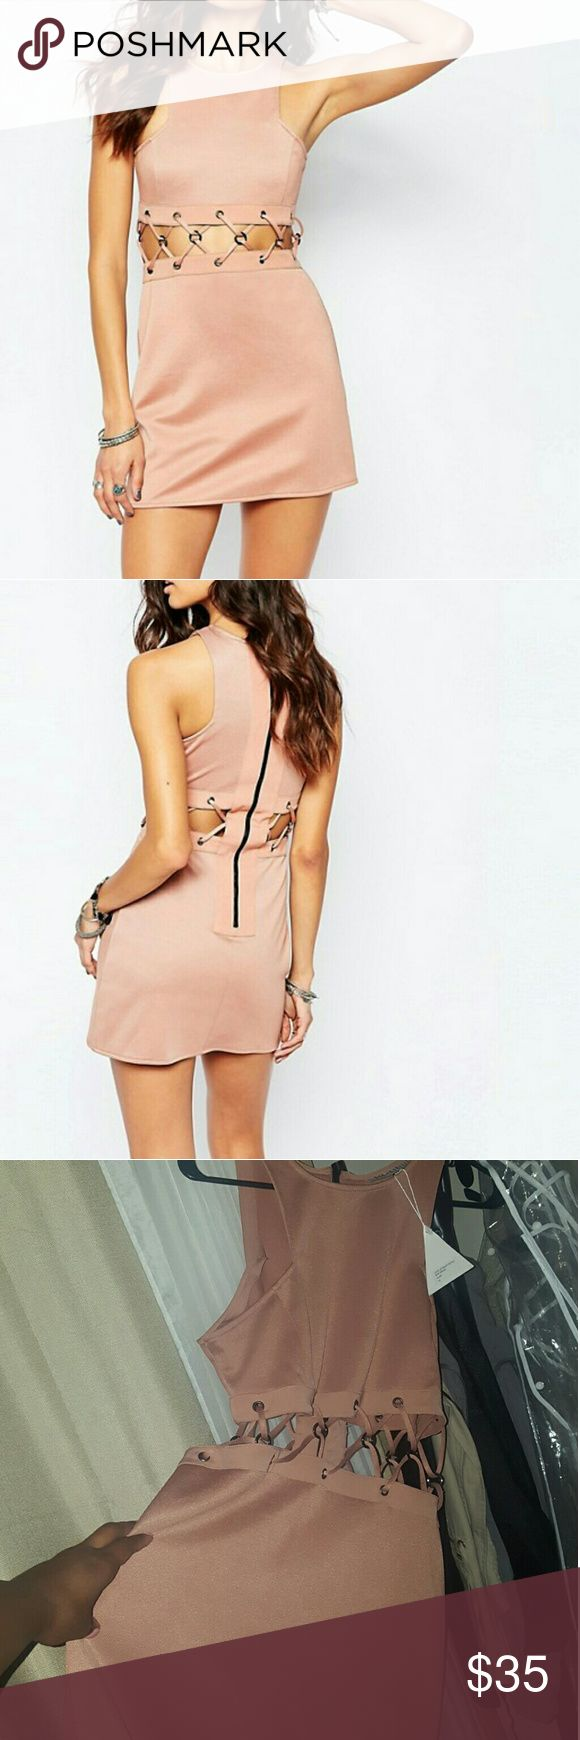 Rok + Rebelle Salmon/rust pink color mini dress with Round neckline Cut-away shoulders Cut-out panel to waist Silver-tone eyelets Lace-up detailing Zip back closure Slim fit AU 14 US 10 runs small like an 8 rok + rebelle Dresses Mini